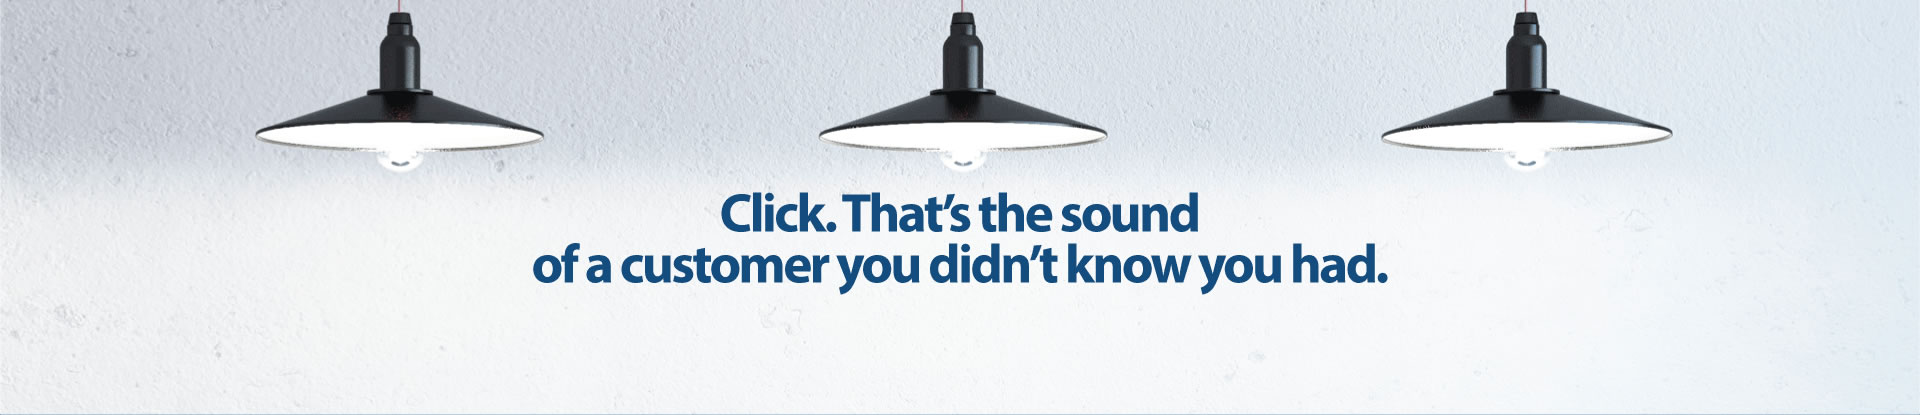 Click. That's the sound of a customer you didn't know you had.